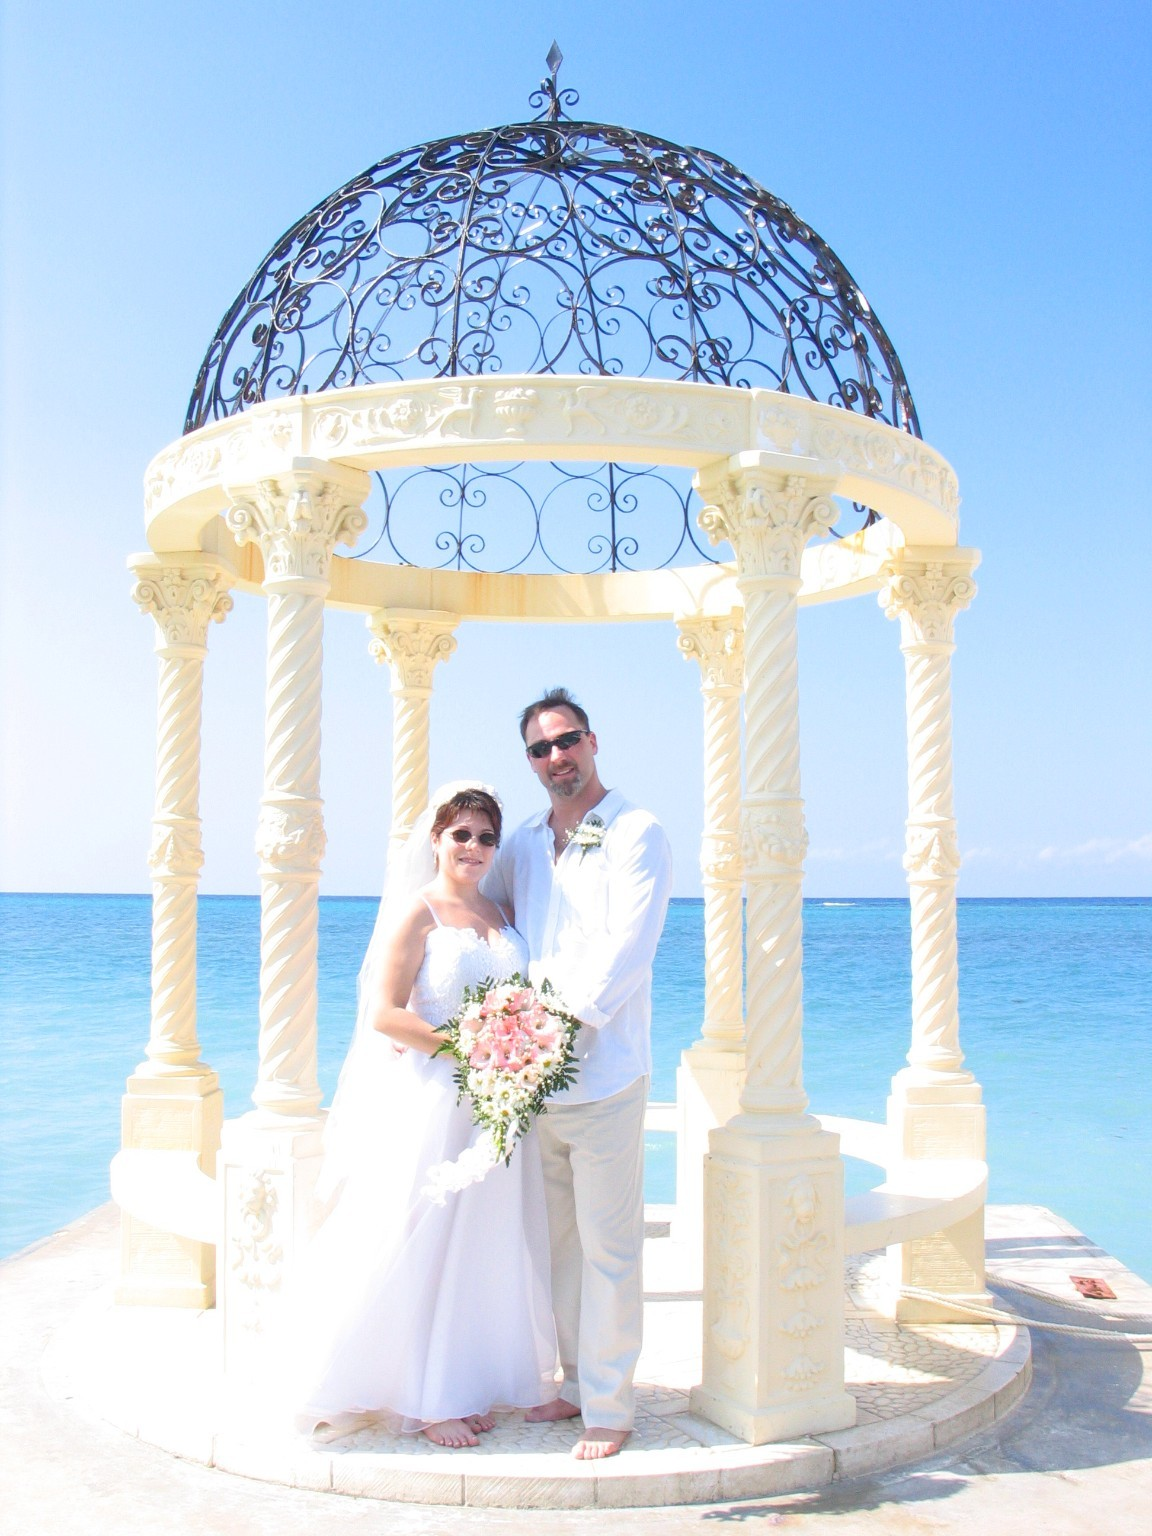 Ceremony, Flowers & Decor, Destinations, white, Wedding, Tropical, Destination, Inspiration board, Jamaica, Barefoot